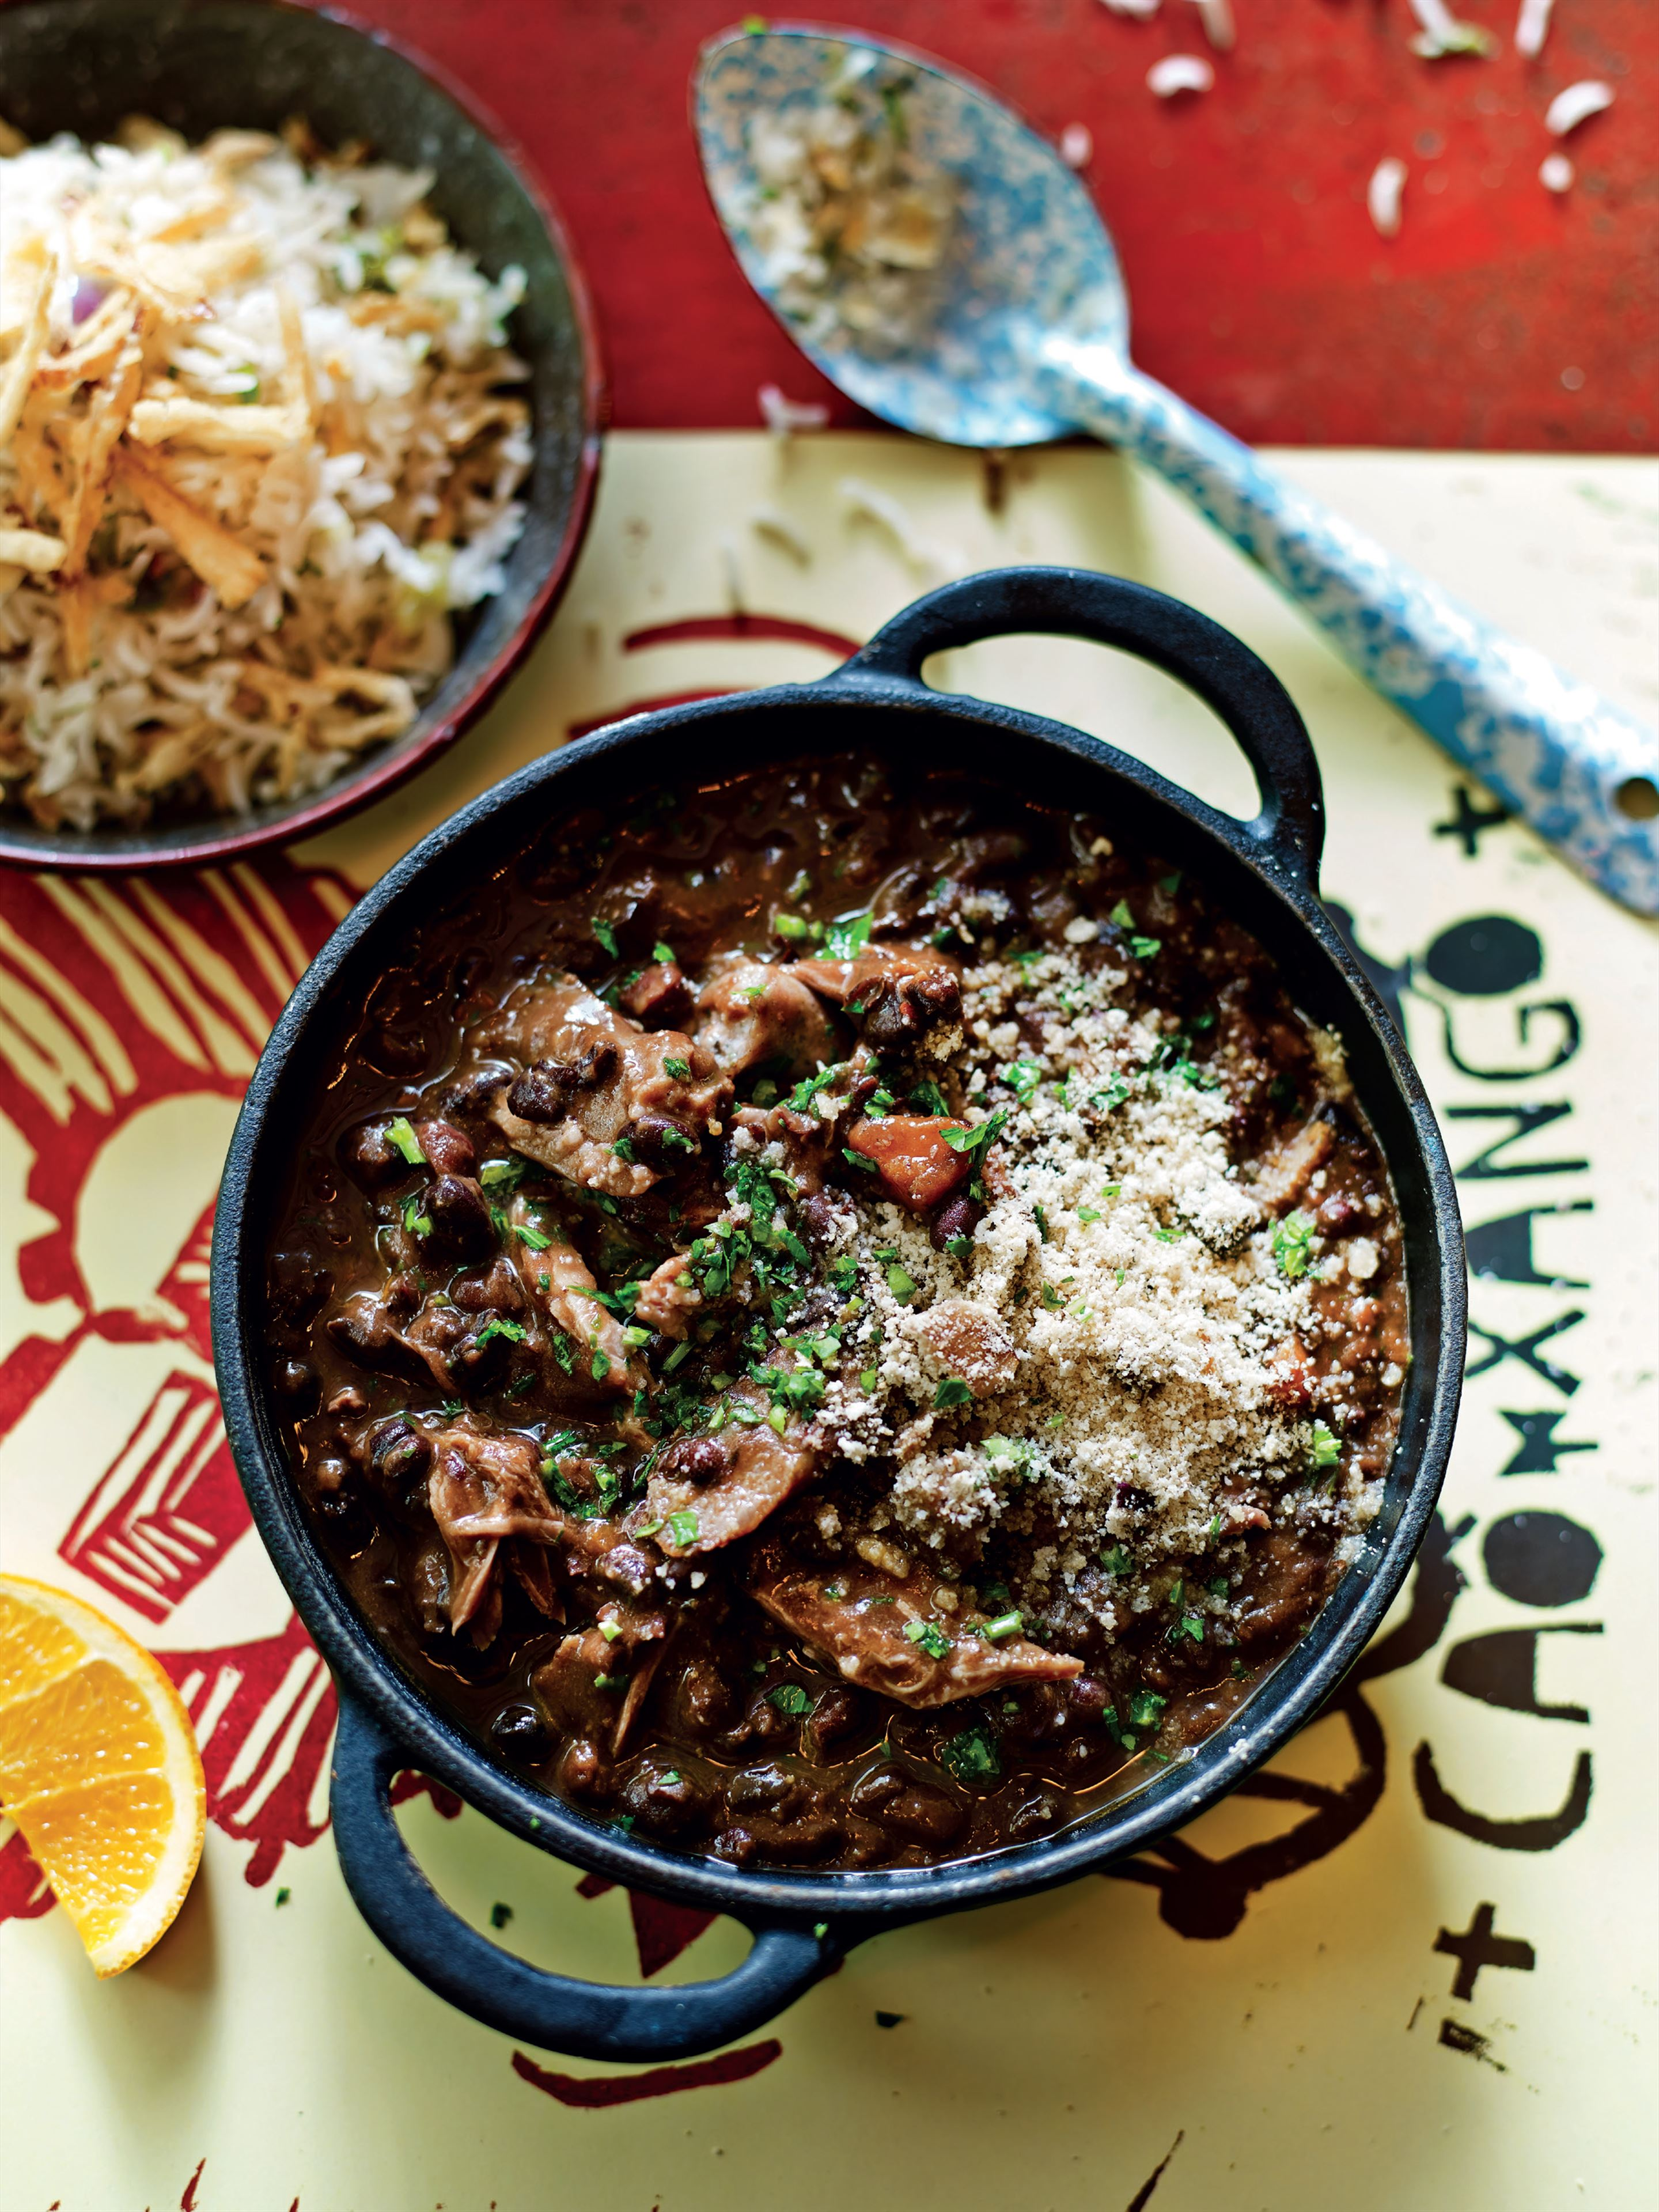 Pulled pork feijoada